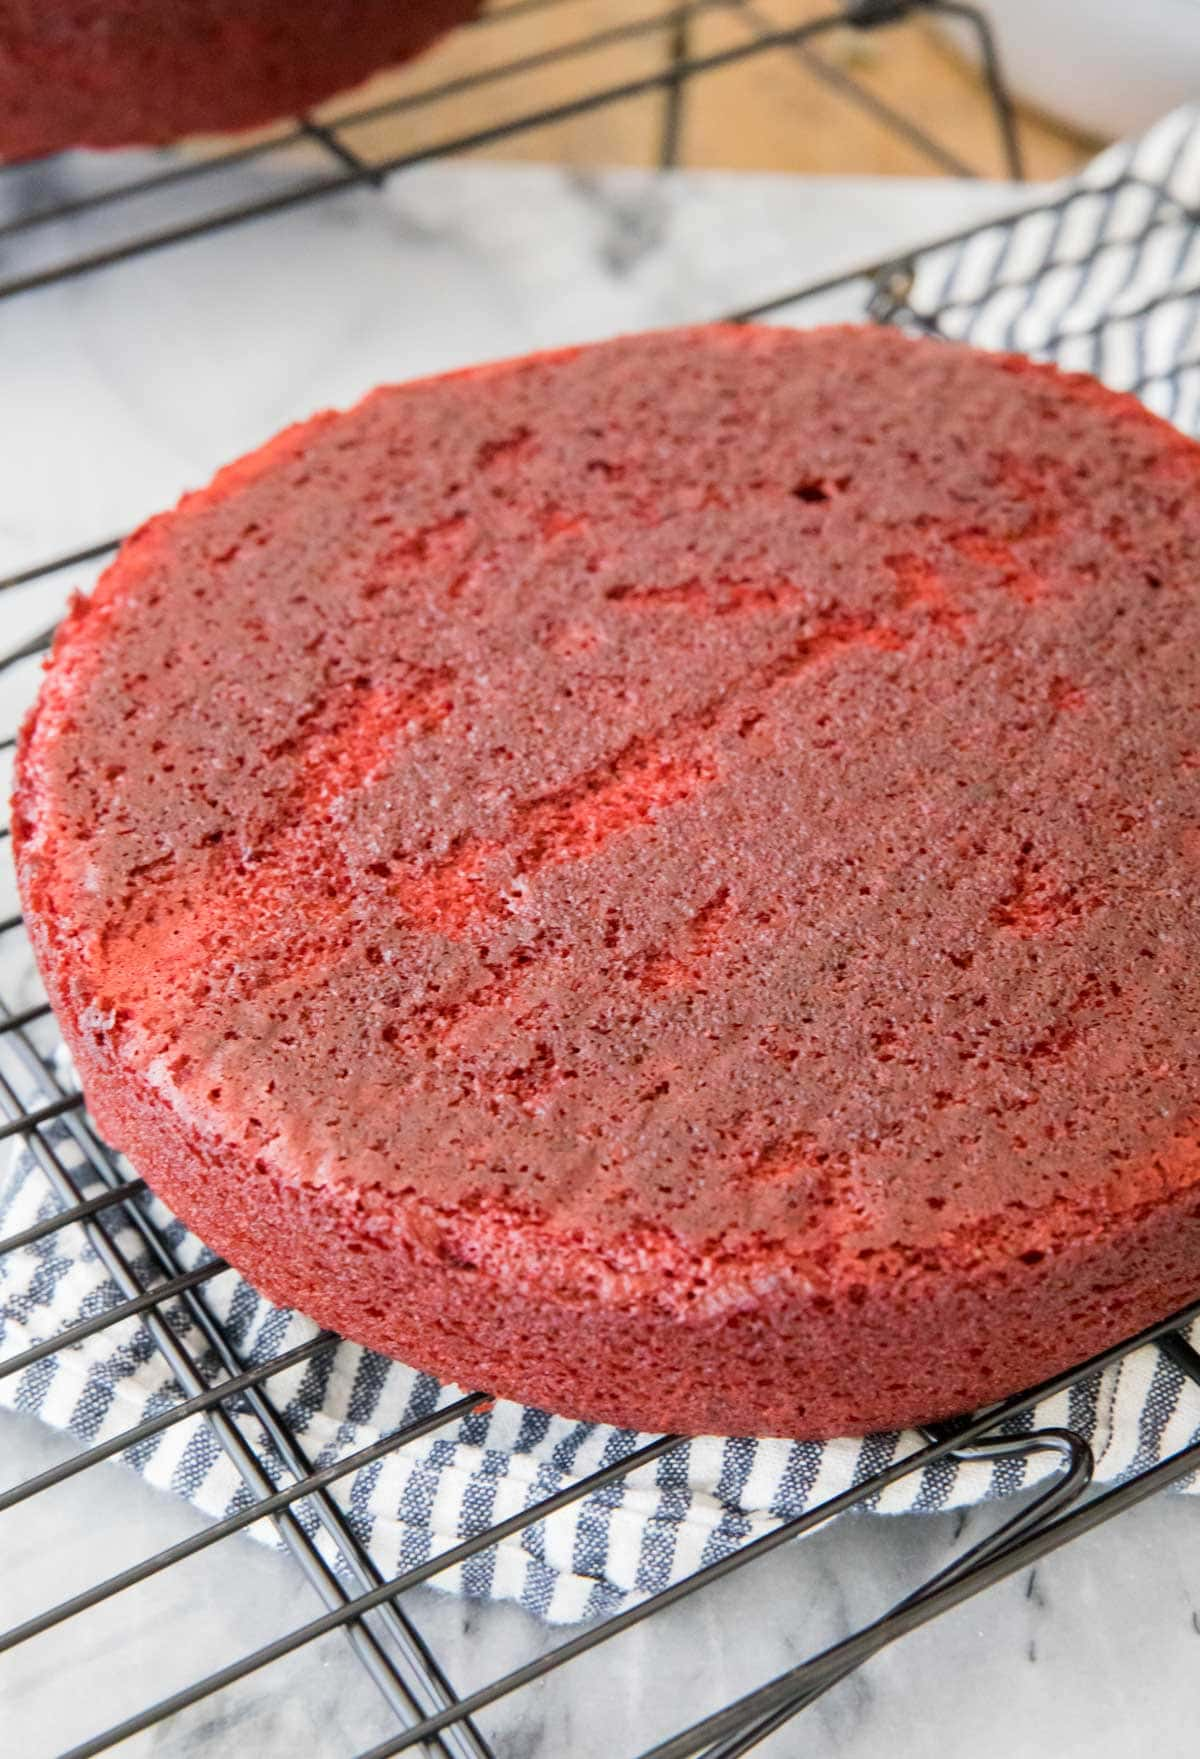 red velvet cake cooling on cooling rack